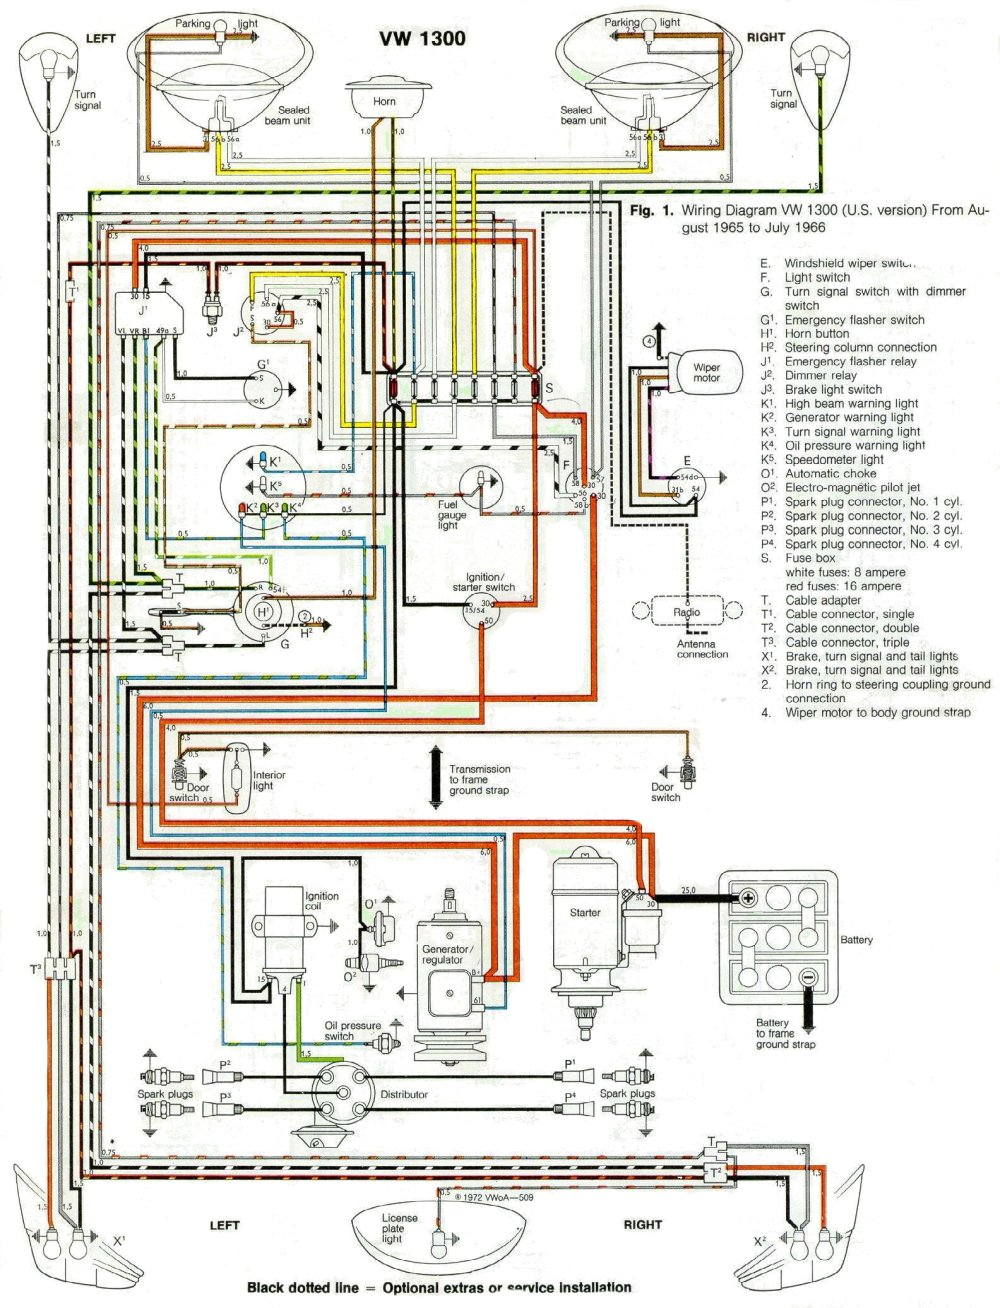 medium resolution of 1966 wiring diagram vw bug light switch diagram 1966 vw bug wiring